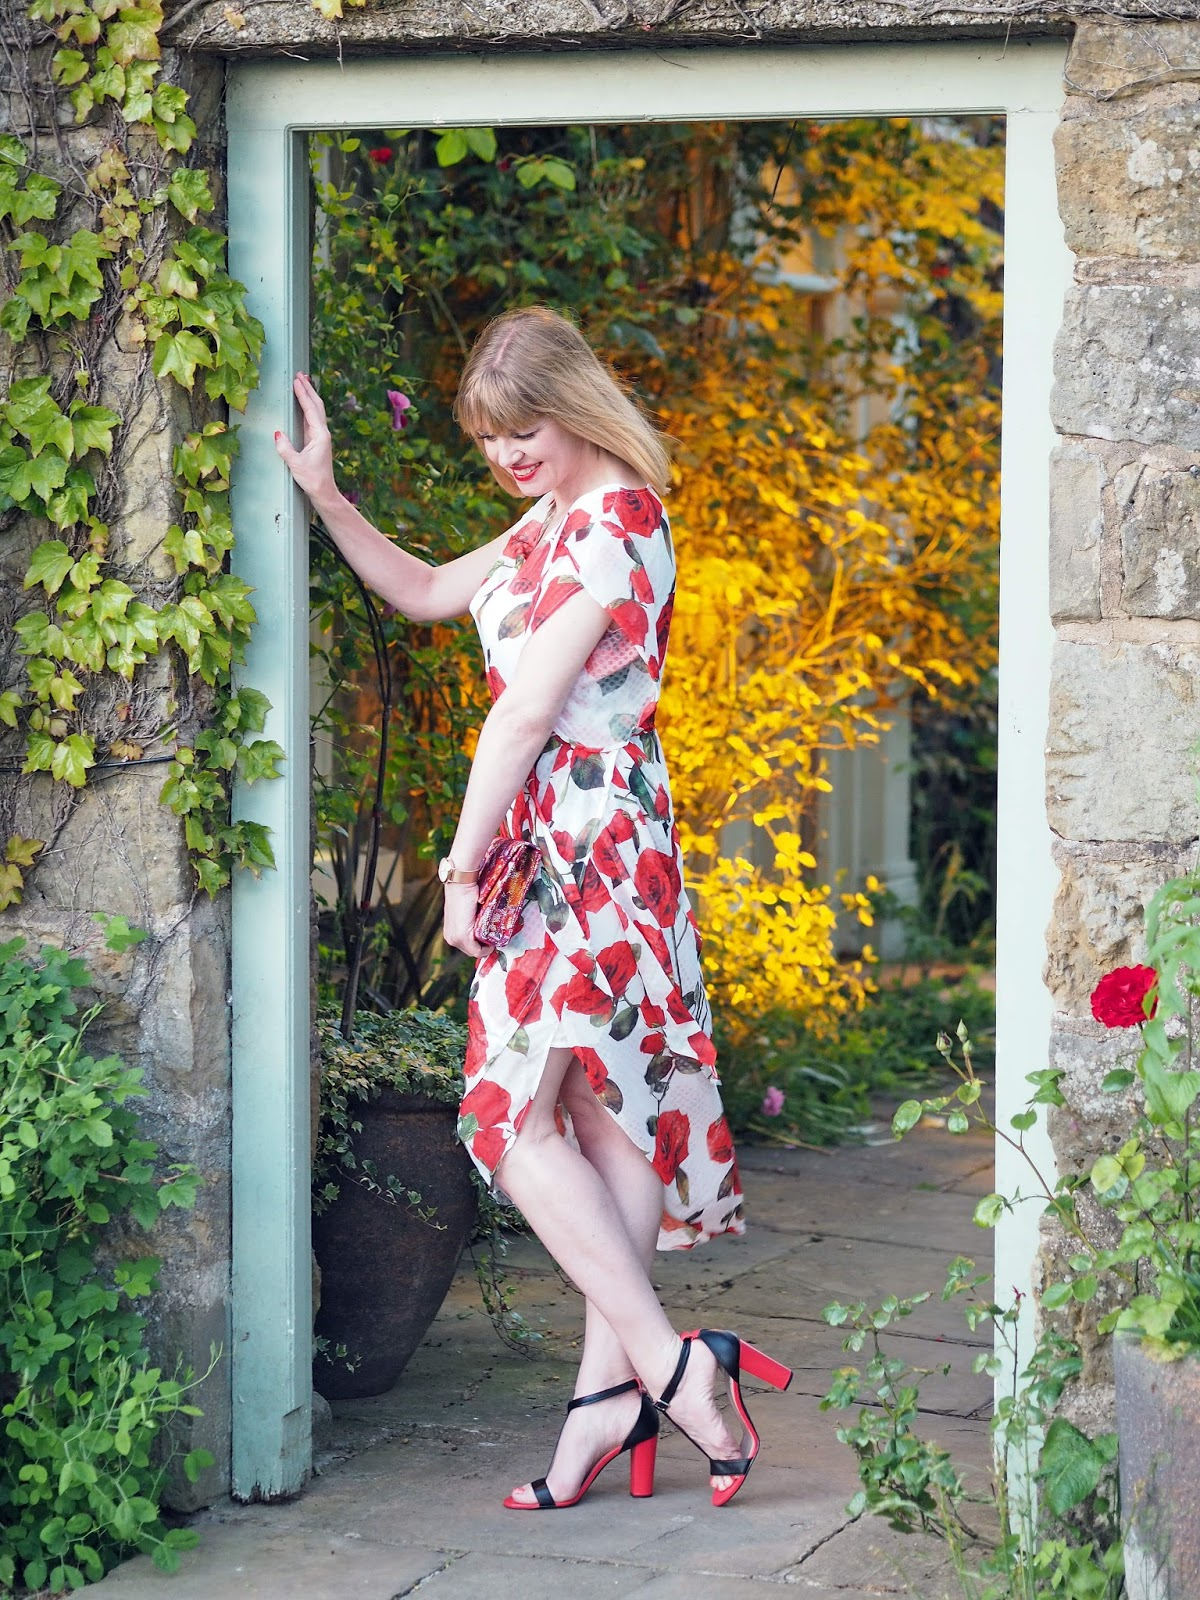 Alice's Pig White and red floral rose draped midi dress with red and black high-heeled Madeleine sandals